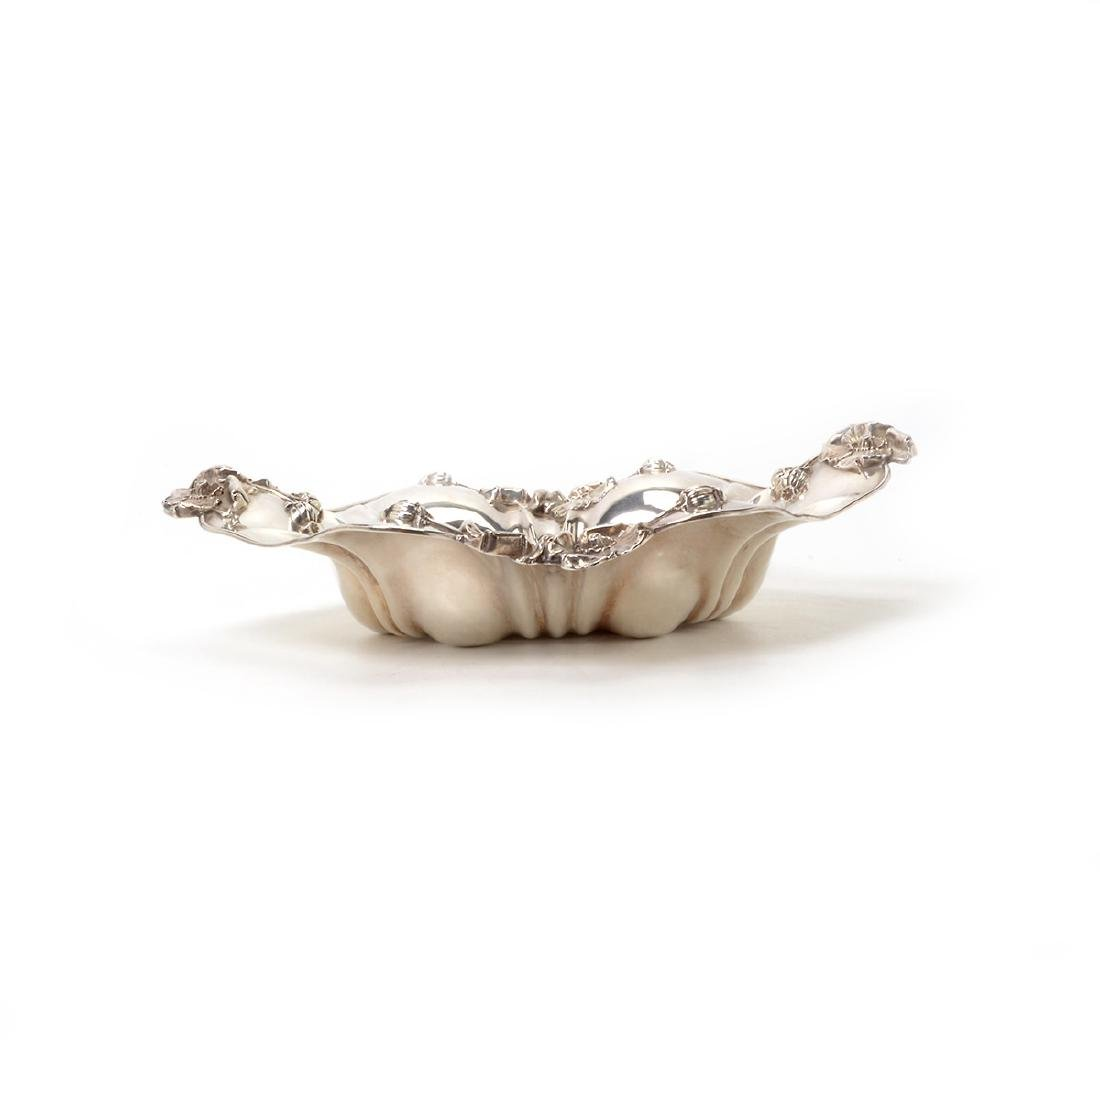 Art Nouveau Sterling Bowl with Floral Decoration - 3